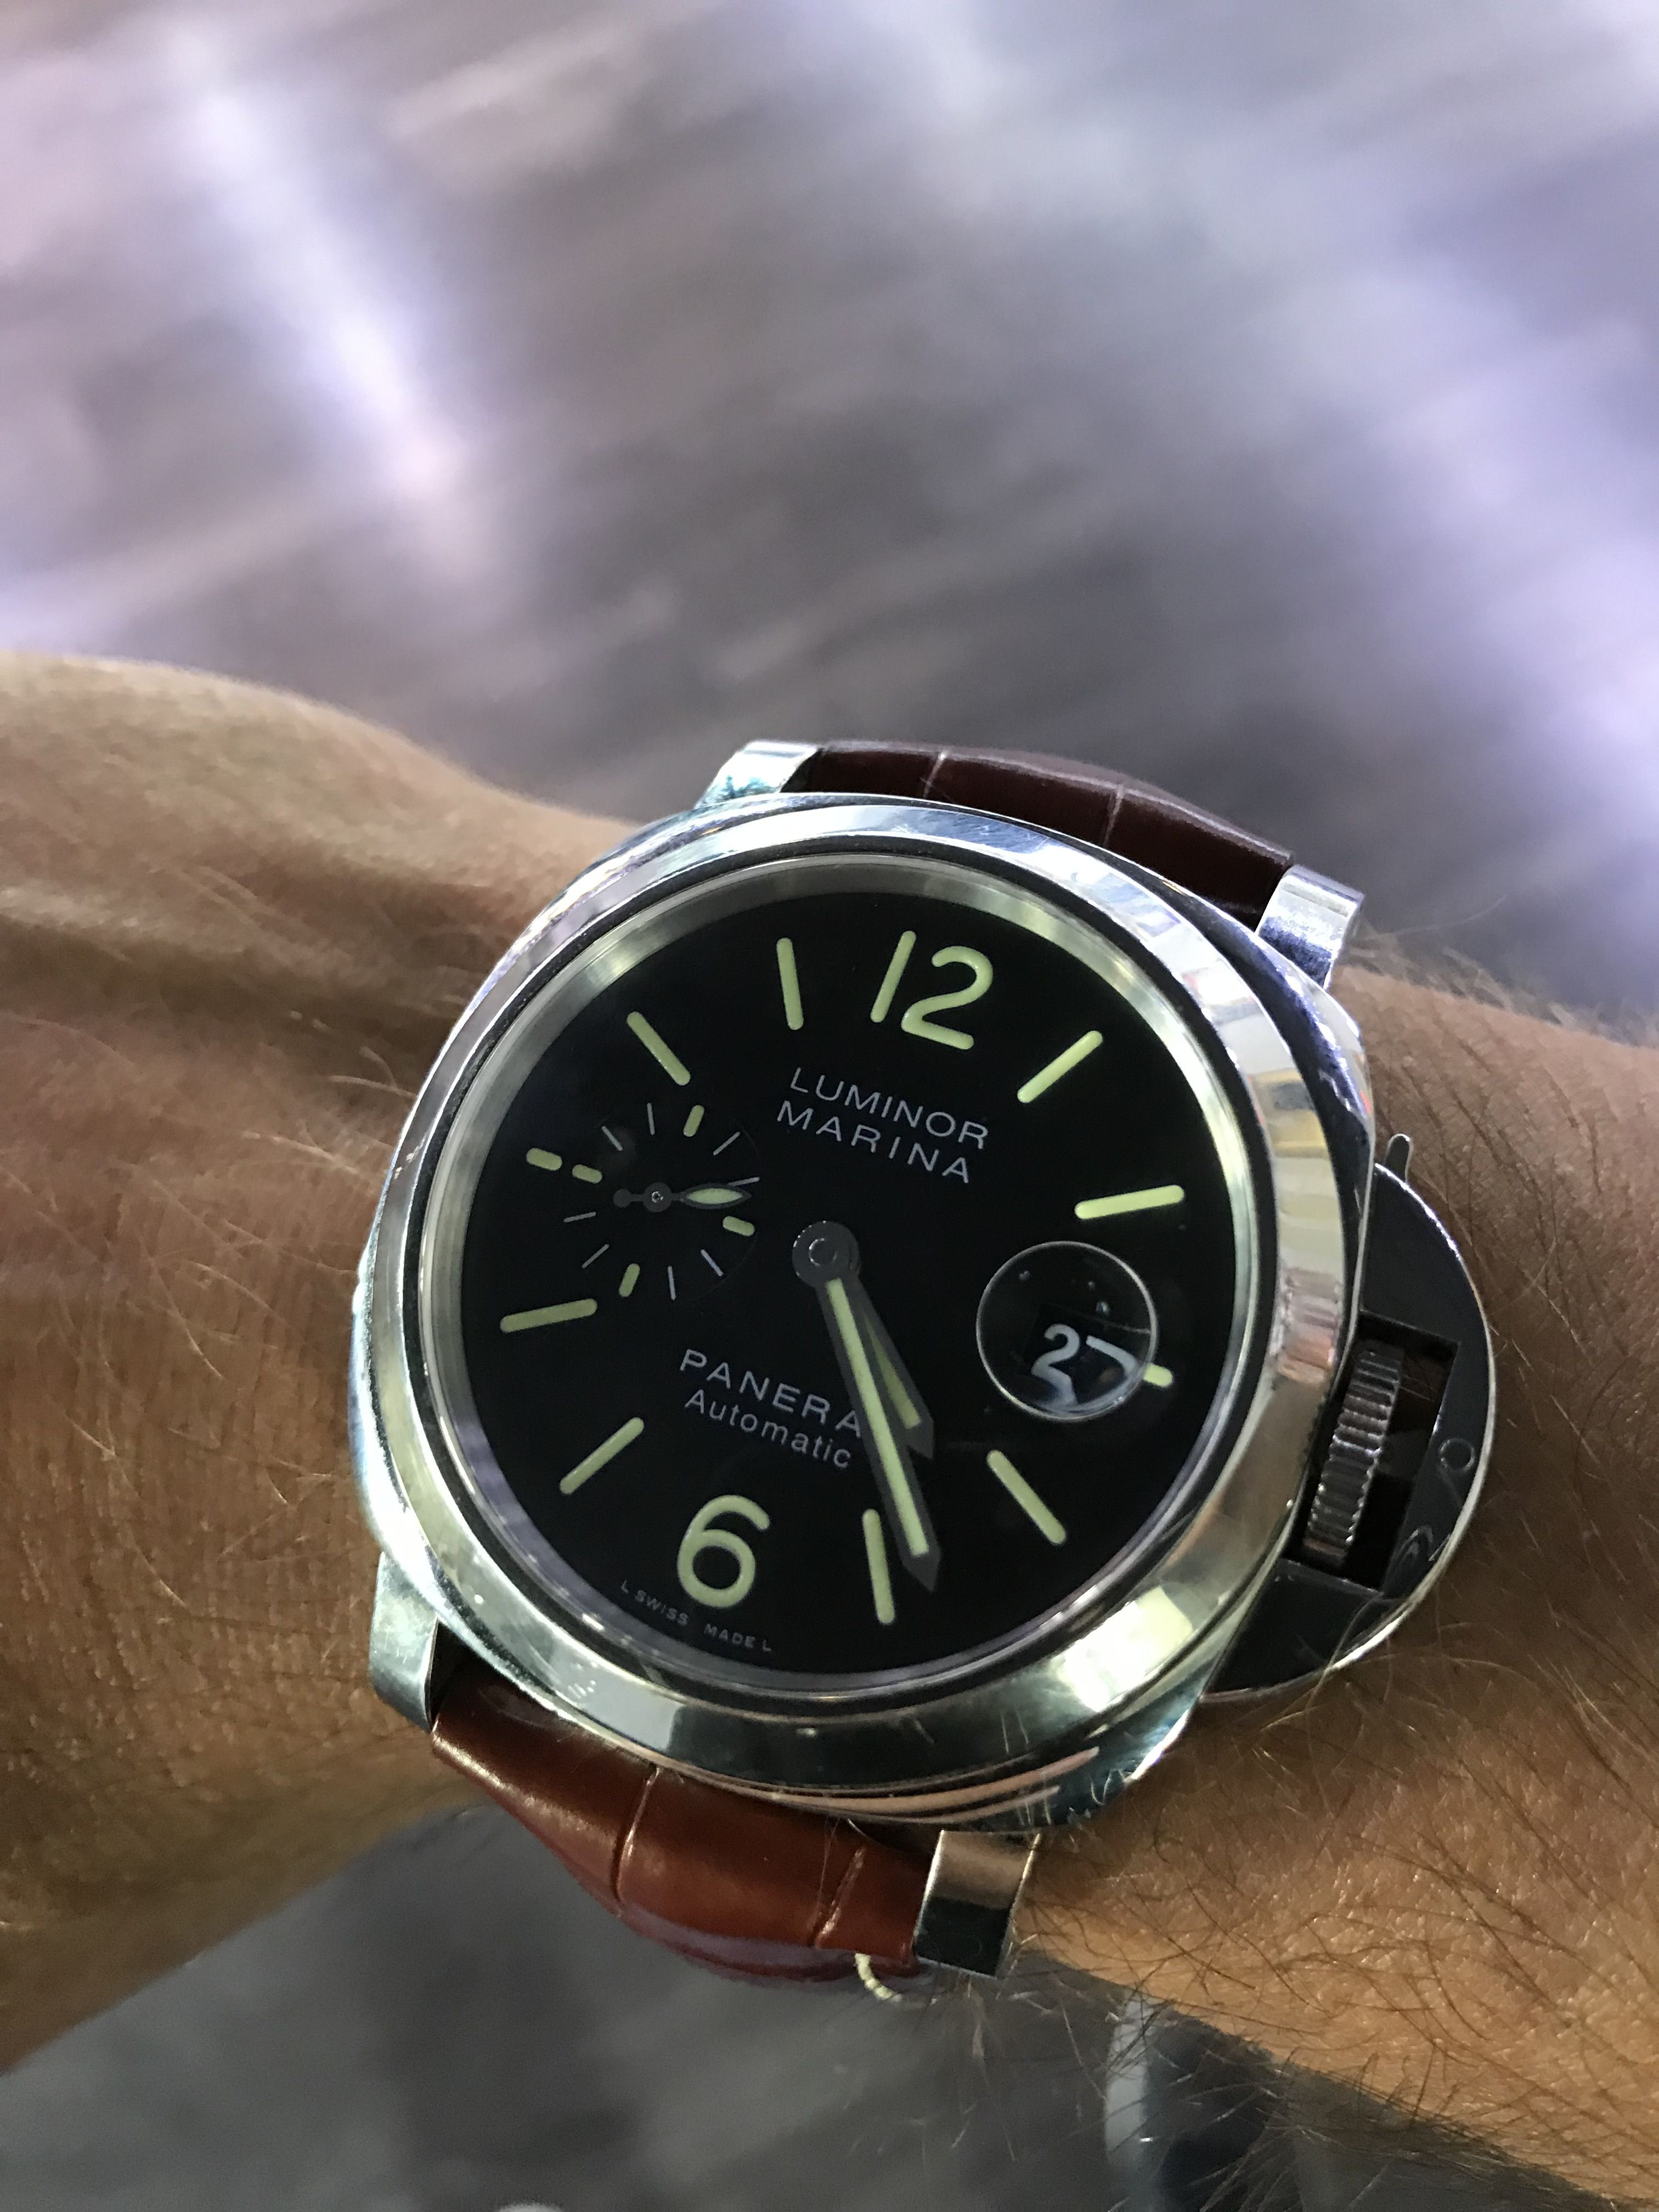 c053d2f81 From the very beginning the Panerai watch brand has had a deep rooted  culture in their